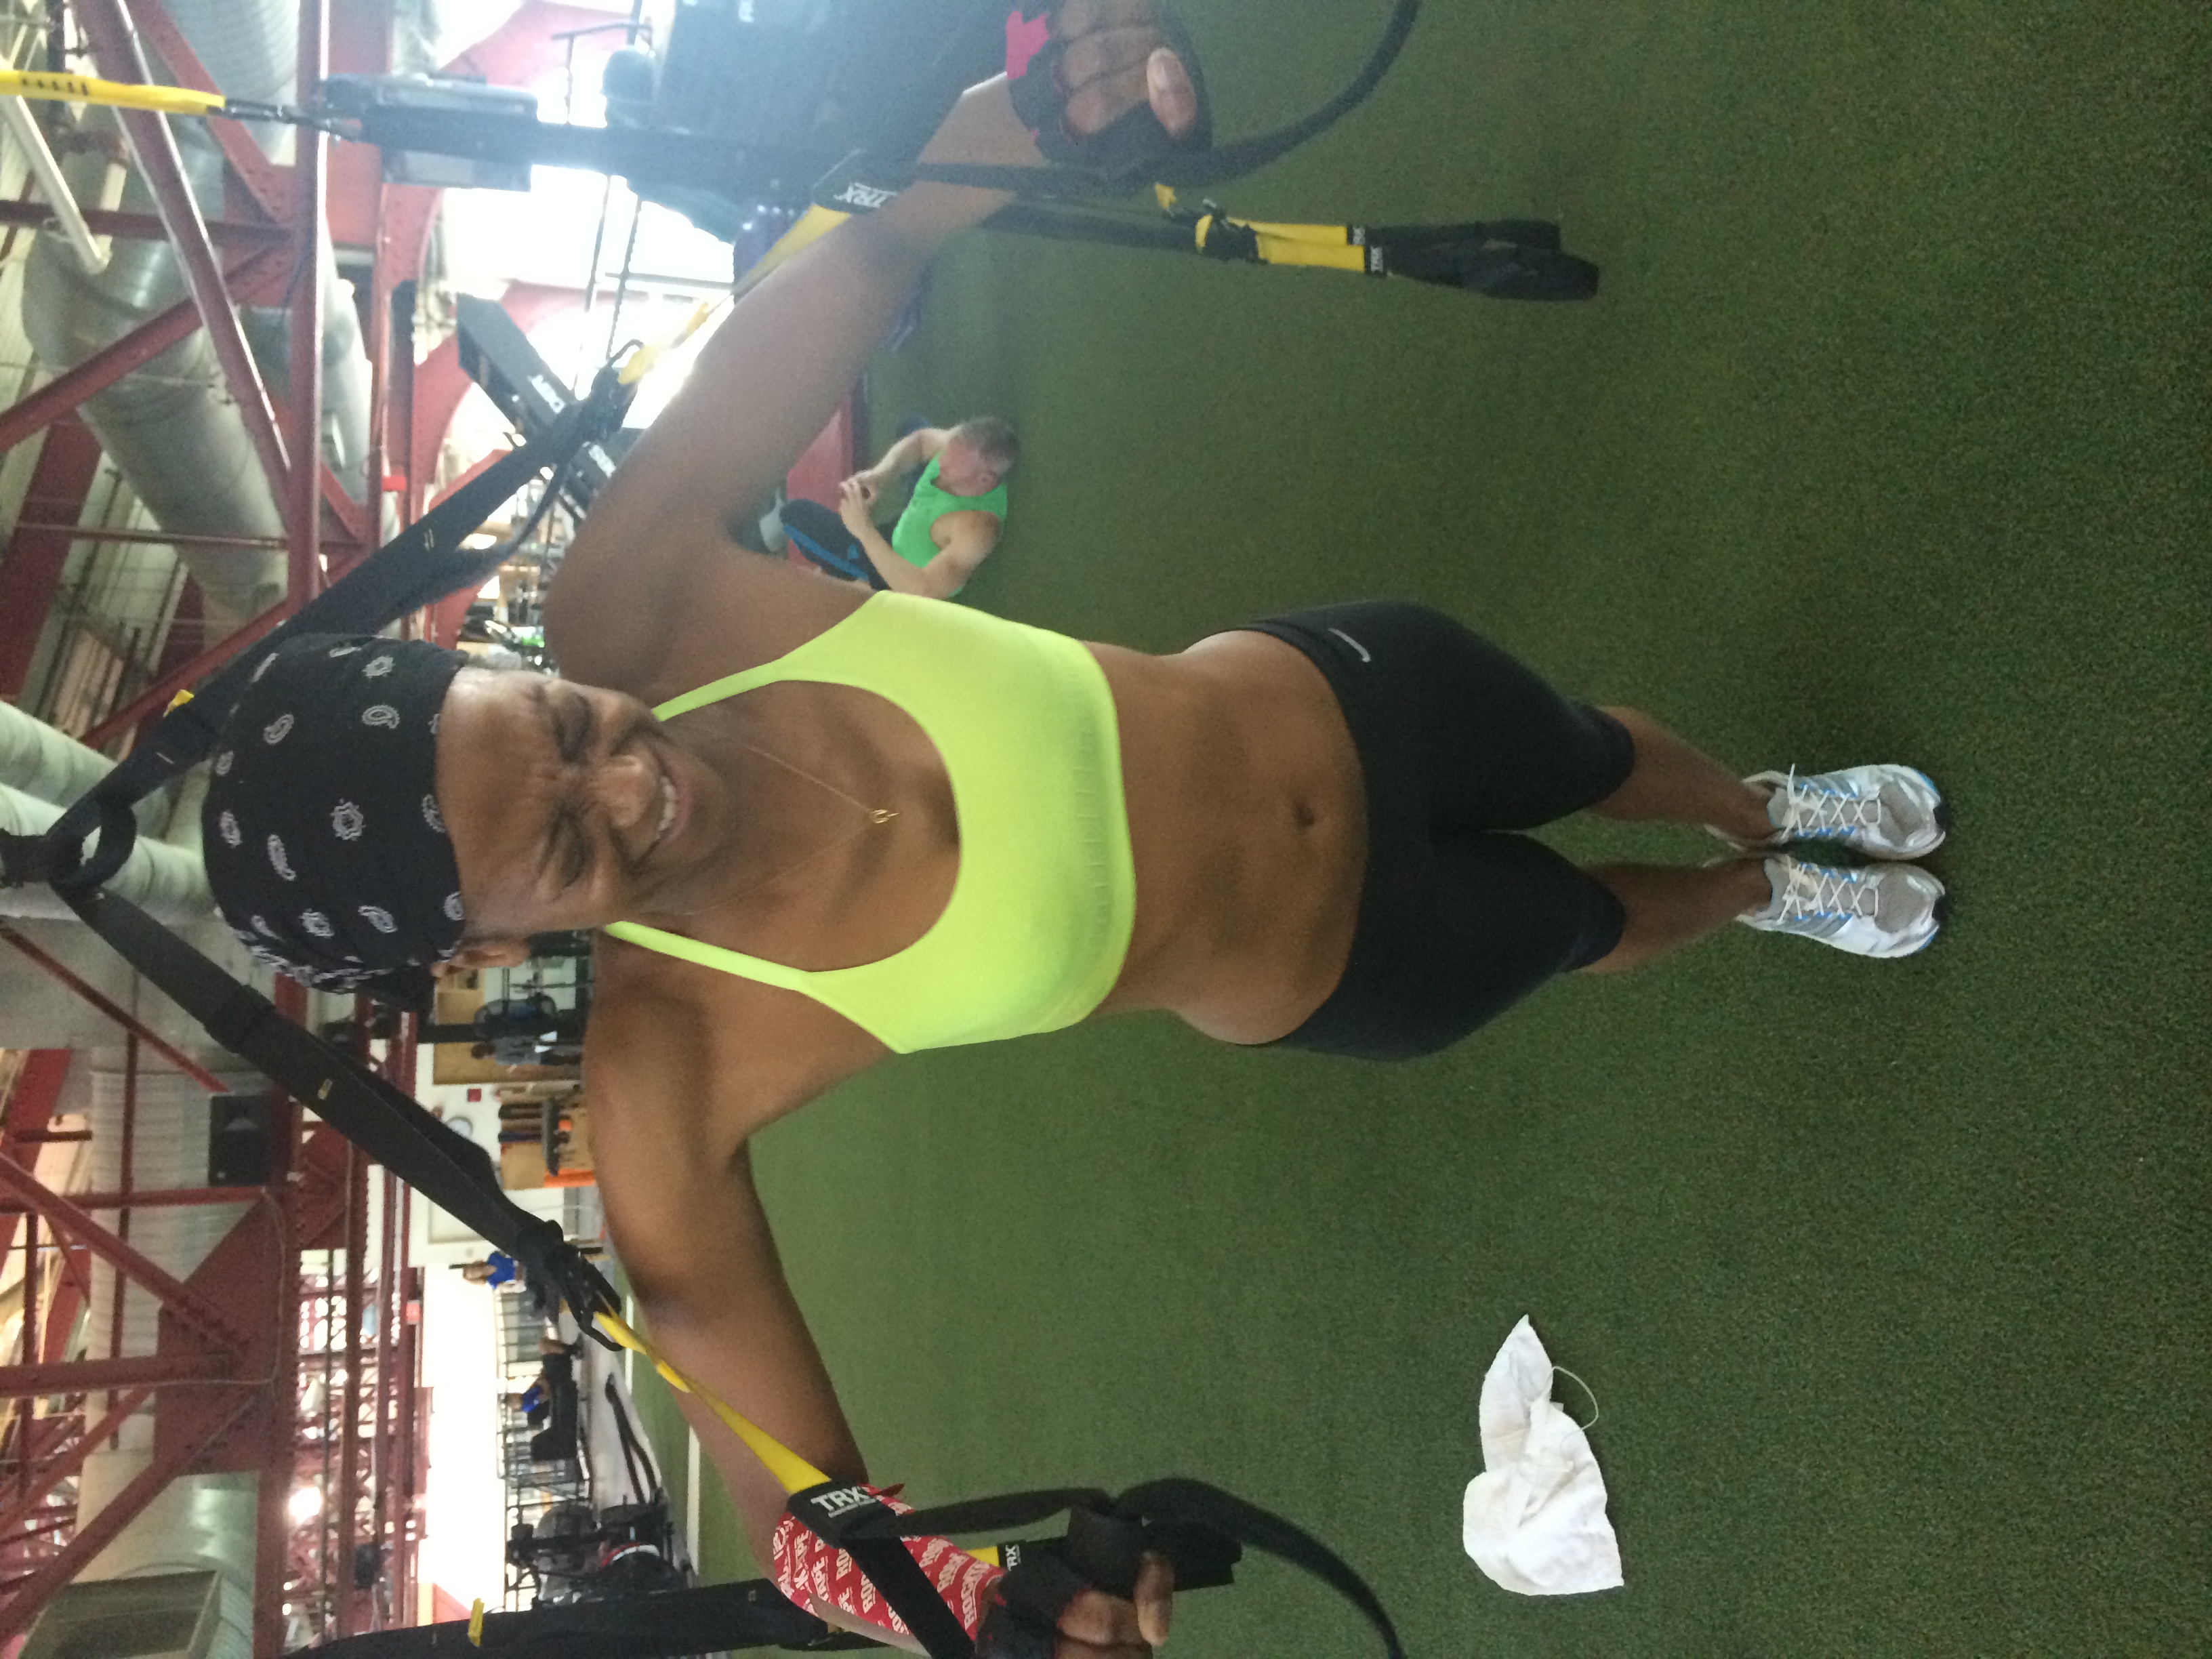 Trying to get it done on the TRX.